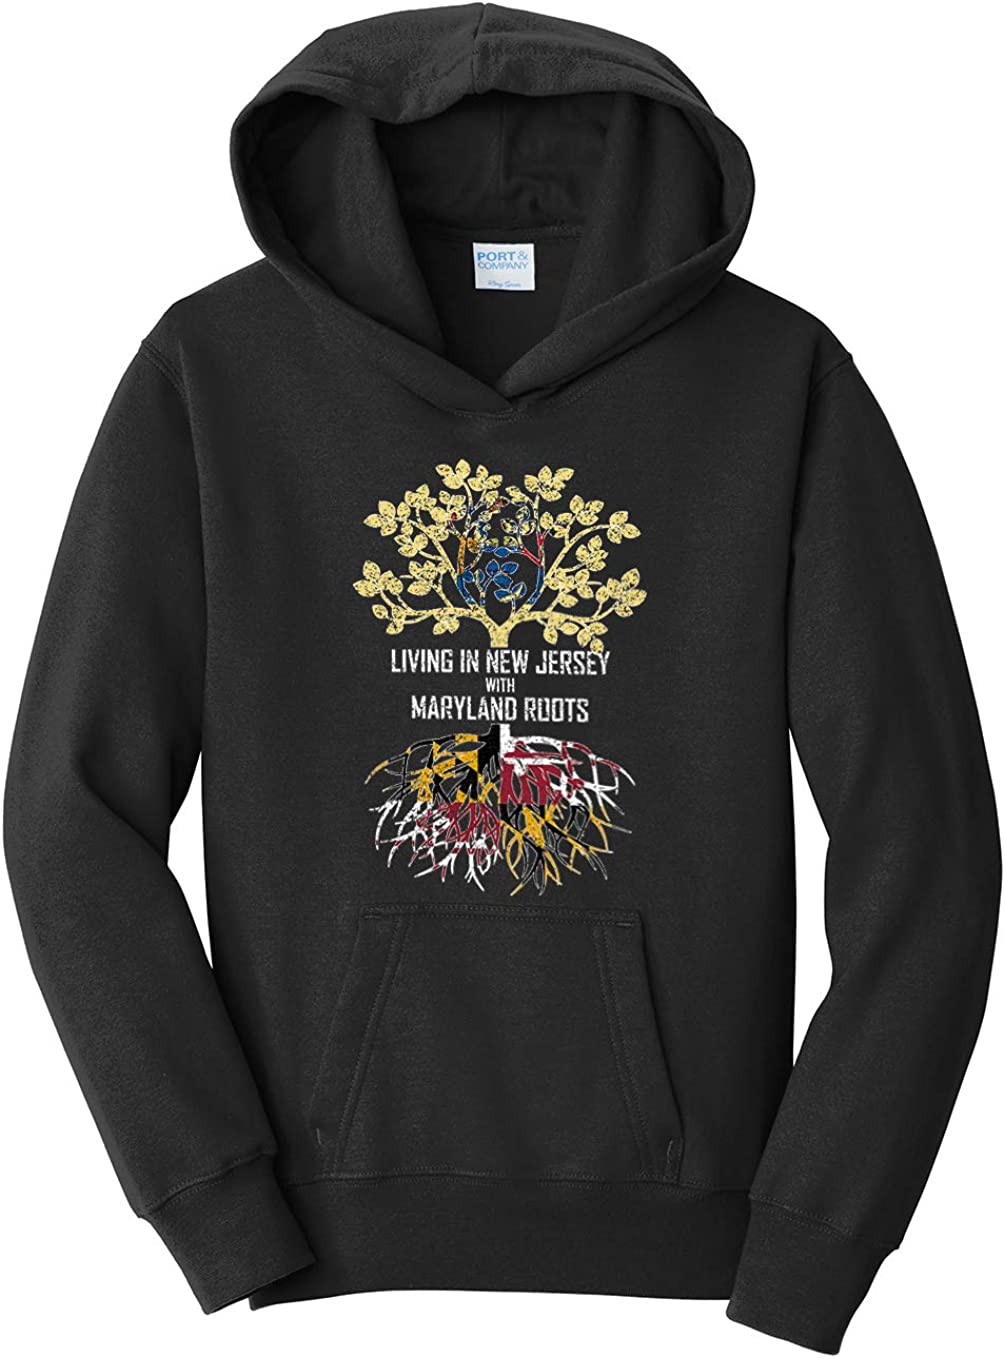 Tenacitee Girls Living in New Jersey with Maryland Roots Hooded Sweatshirt